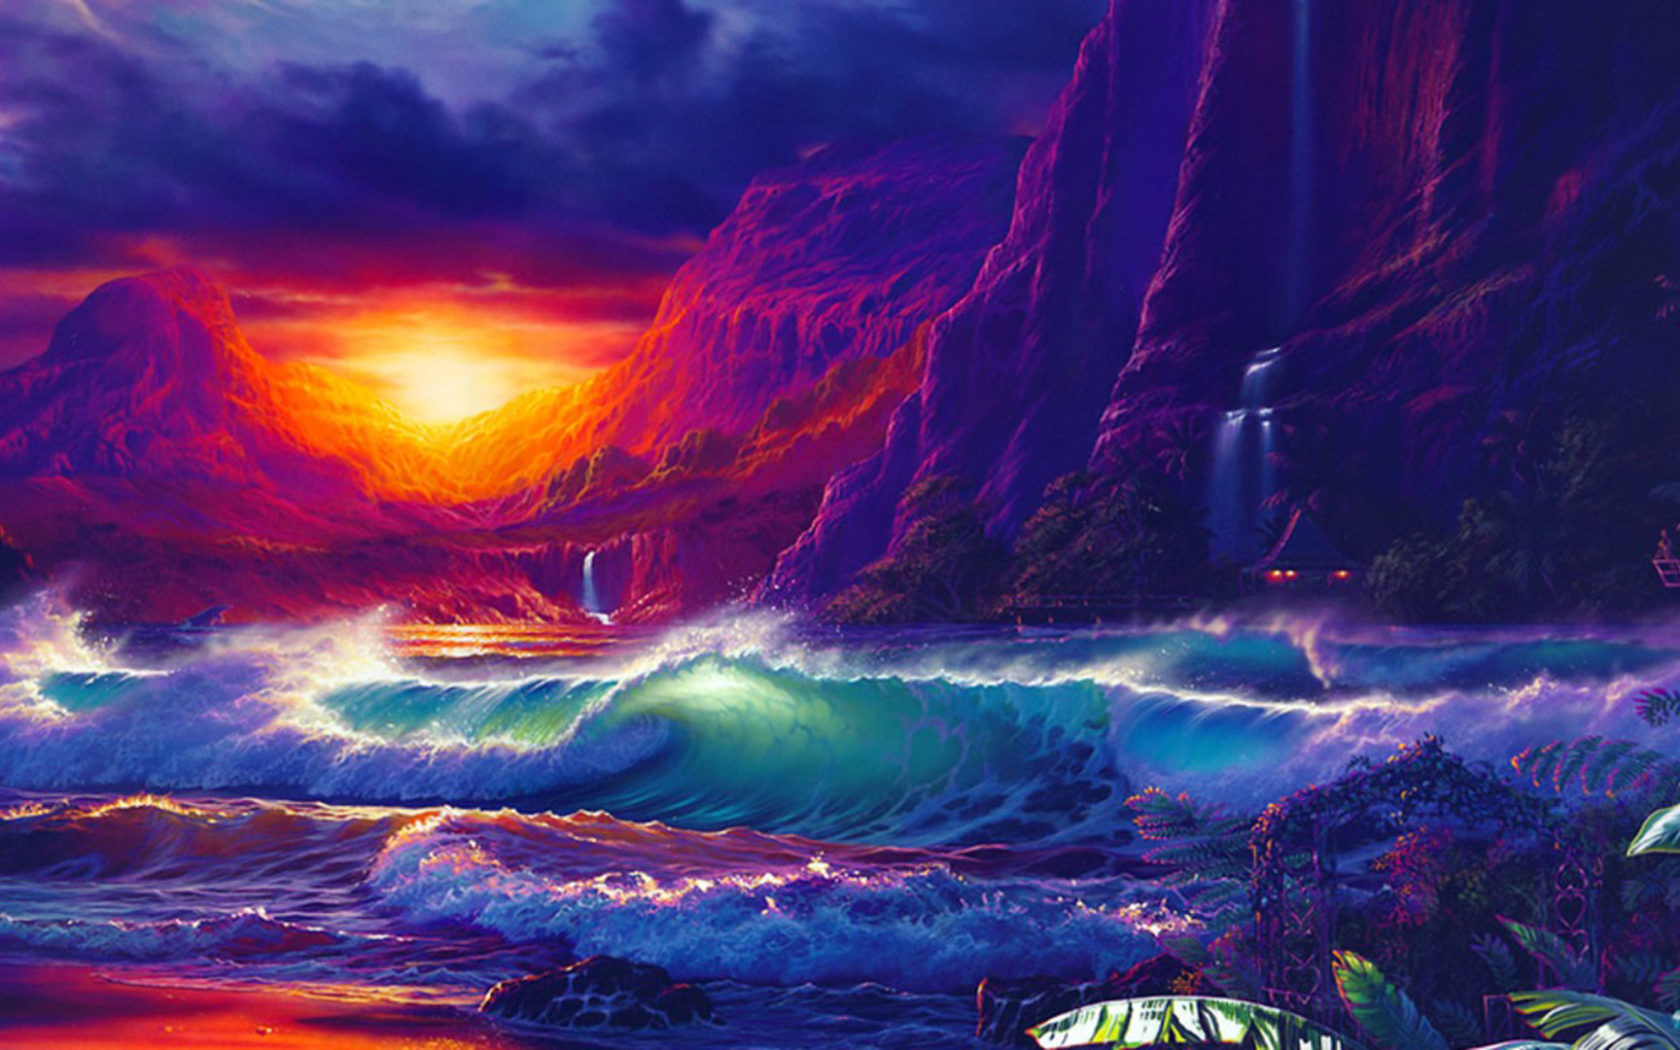 Butterfly Wallpaper For Desktop With Animation Sunset Orange Sky Dark Cloud Sea Waves Of The Sea Rocky